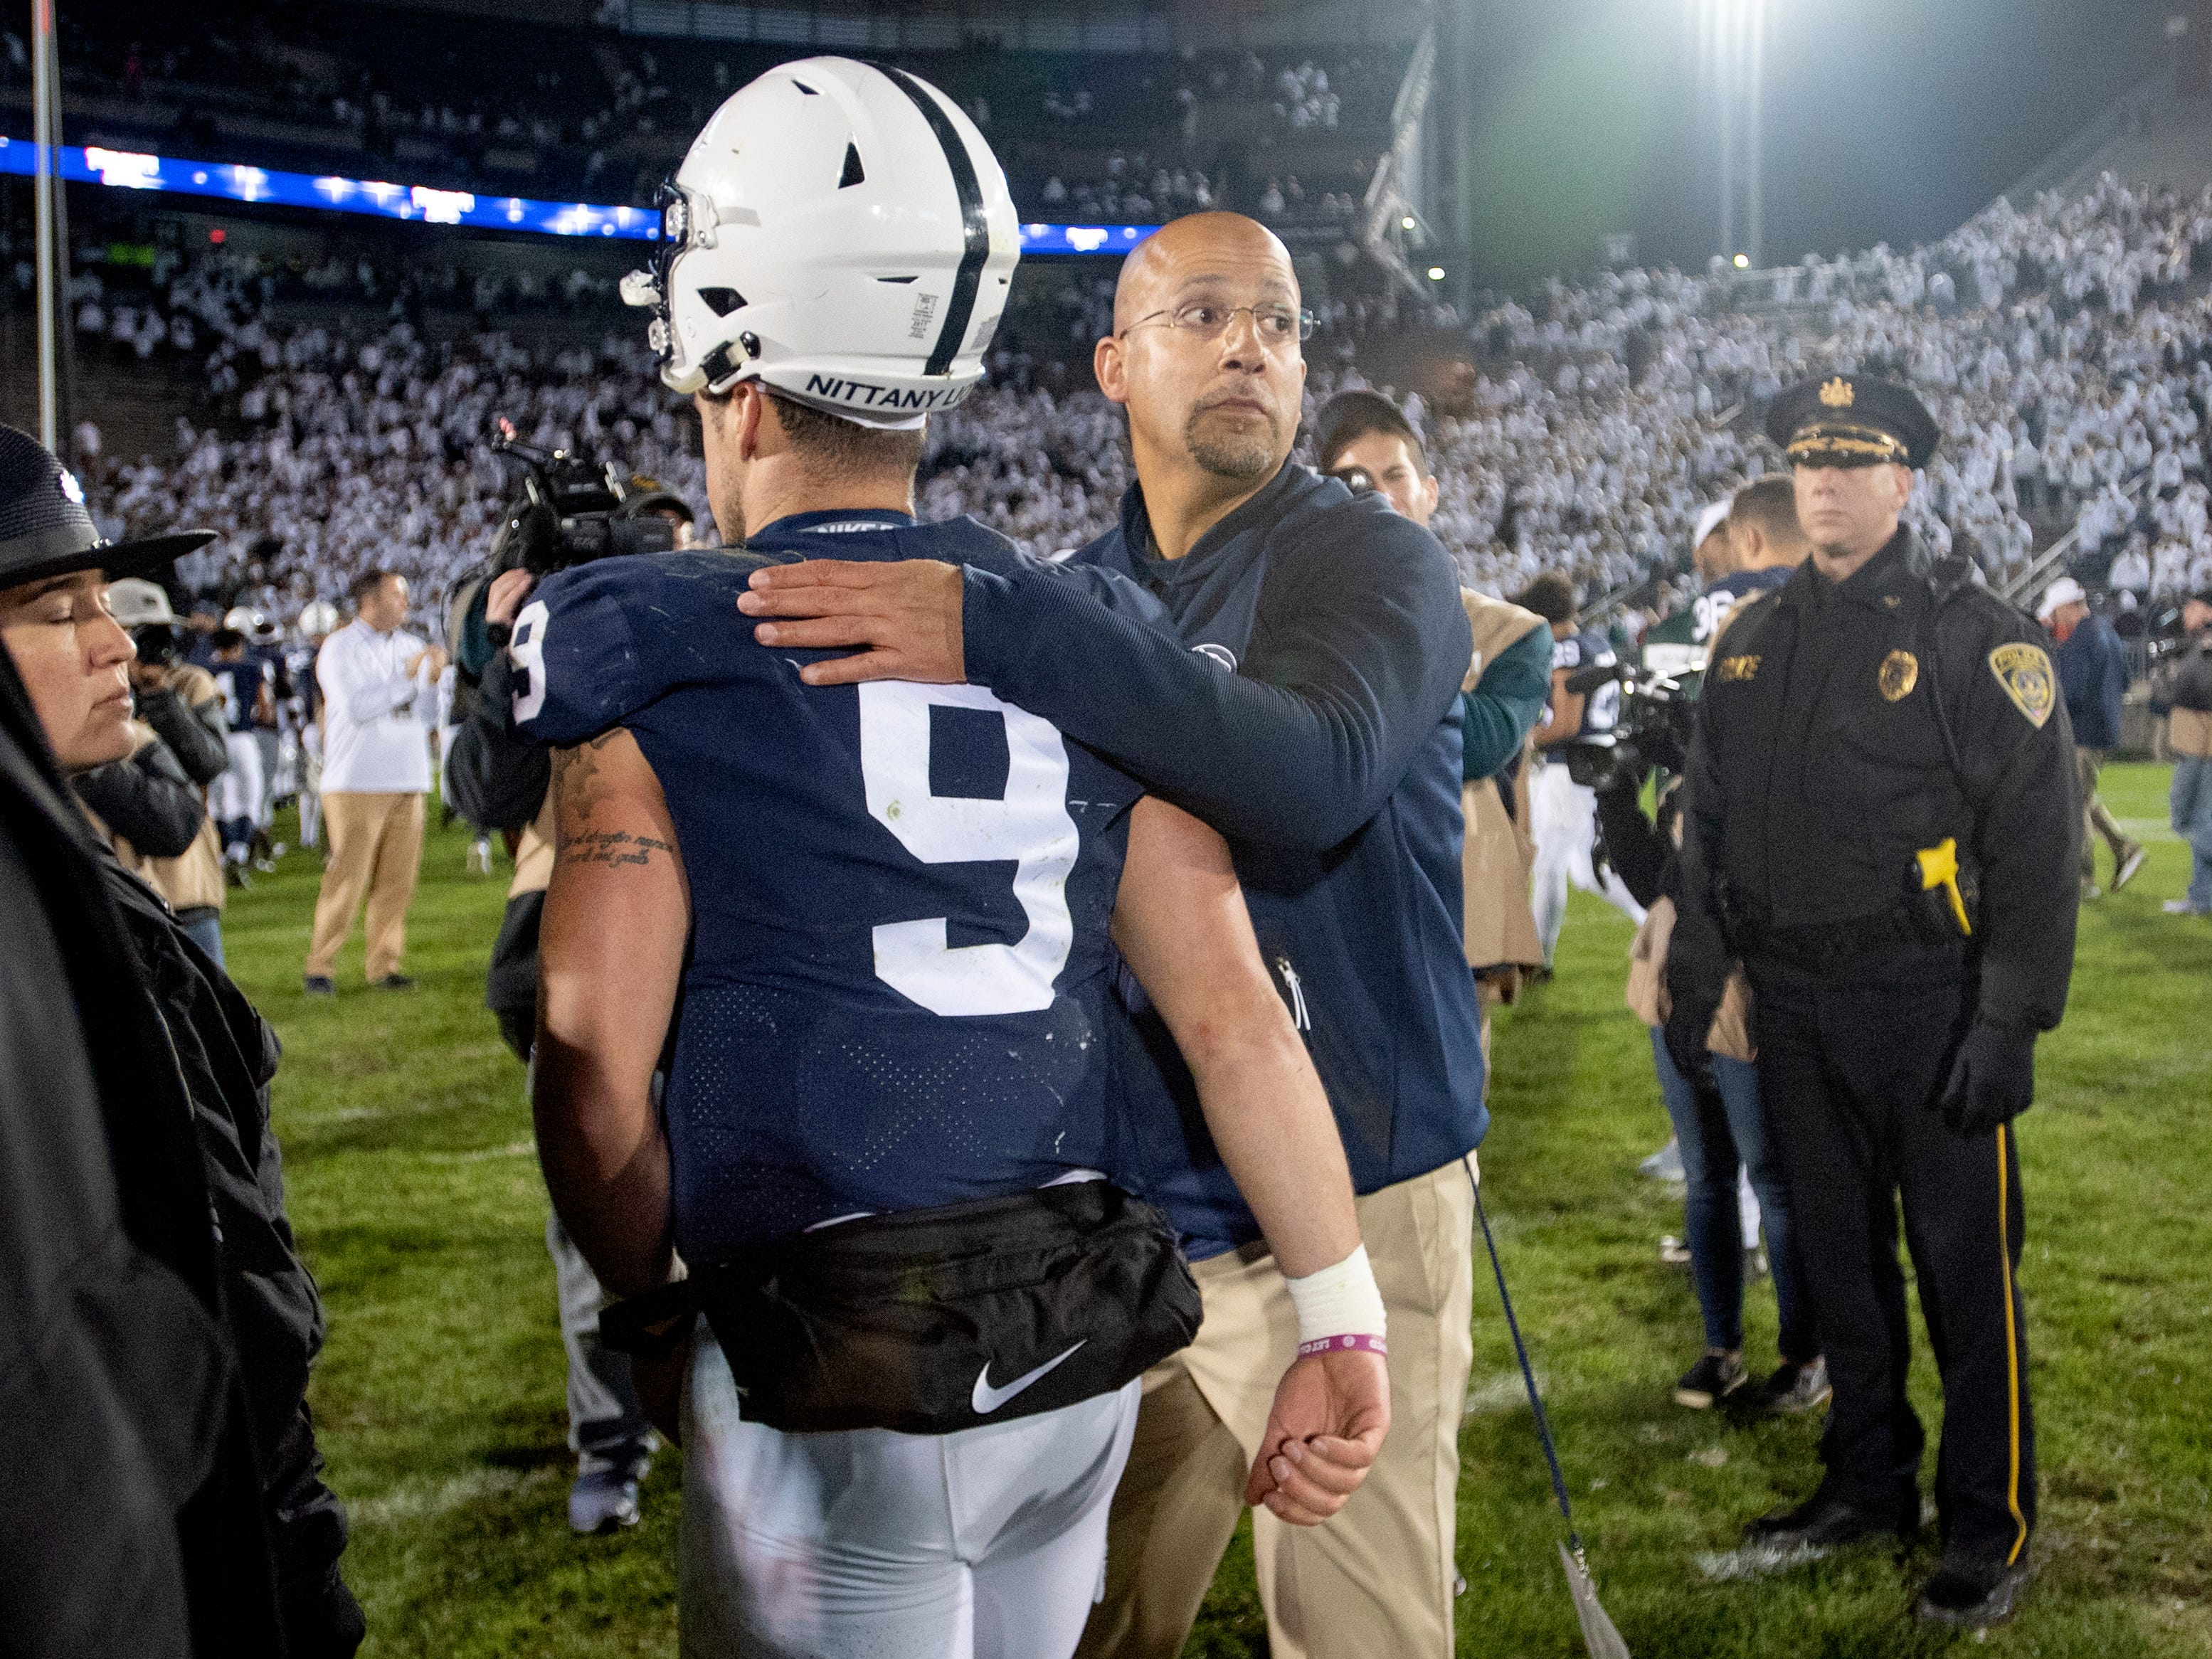 Penn State football coach James Franklin pats quarterback Trace McSorley (9) on the back as they walk off the field after a loss to Michigan State in an NCAA college football game Saturday, Oct. 13, 2018, in State College, Pa. (Abby Drey/Centre Daily Times via AP)